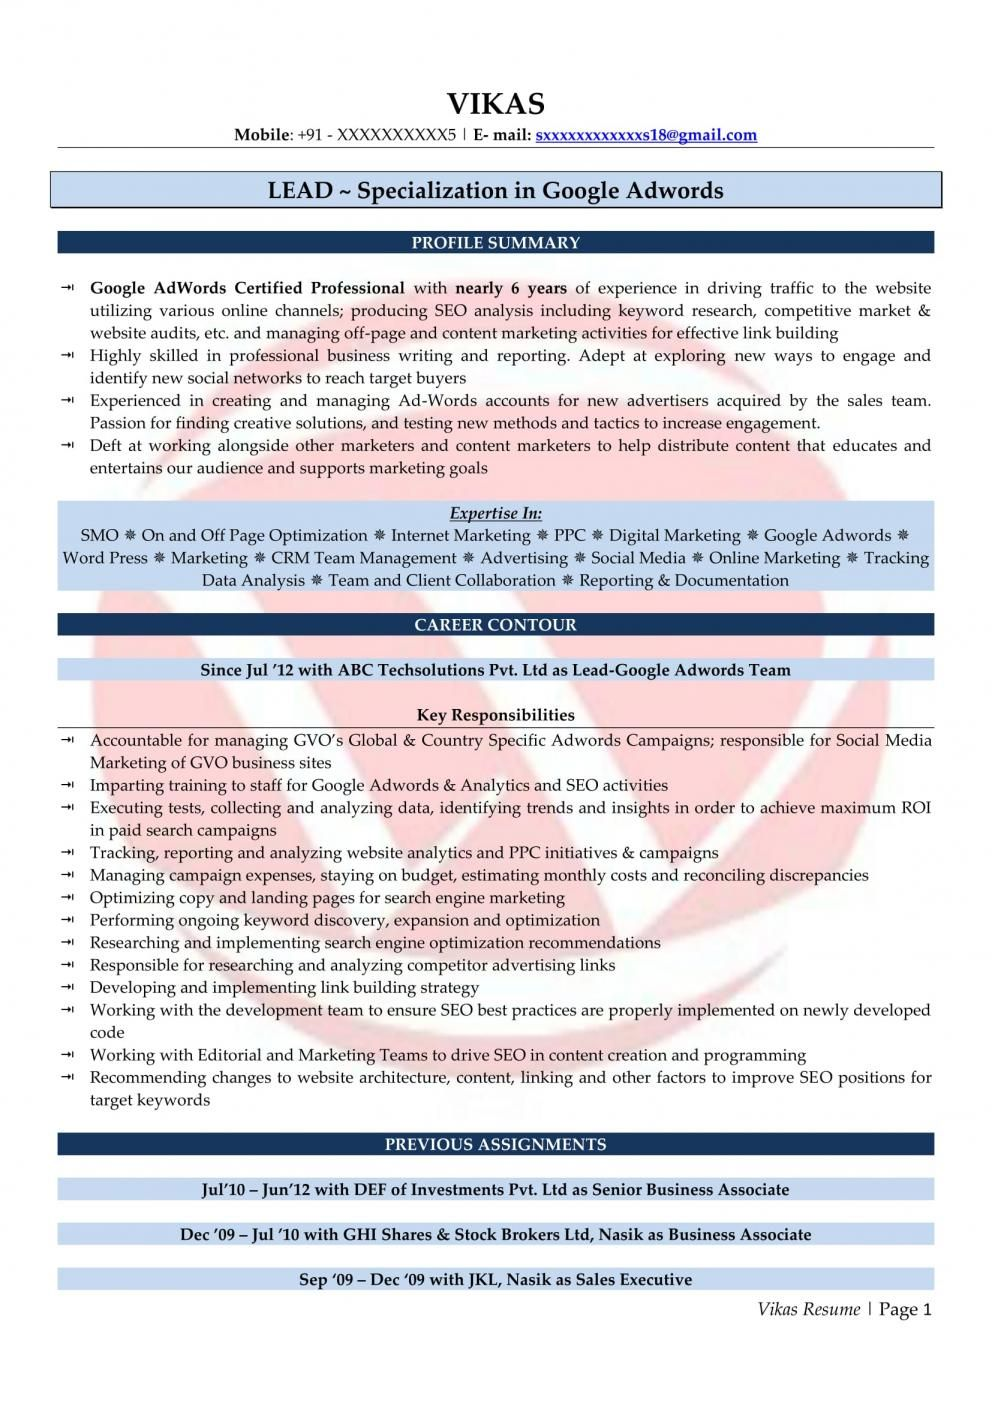 Resume Samples For Digital Marketing Fresher Marketing Resume First Web Page Best Resume